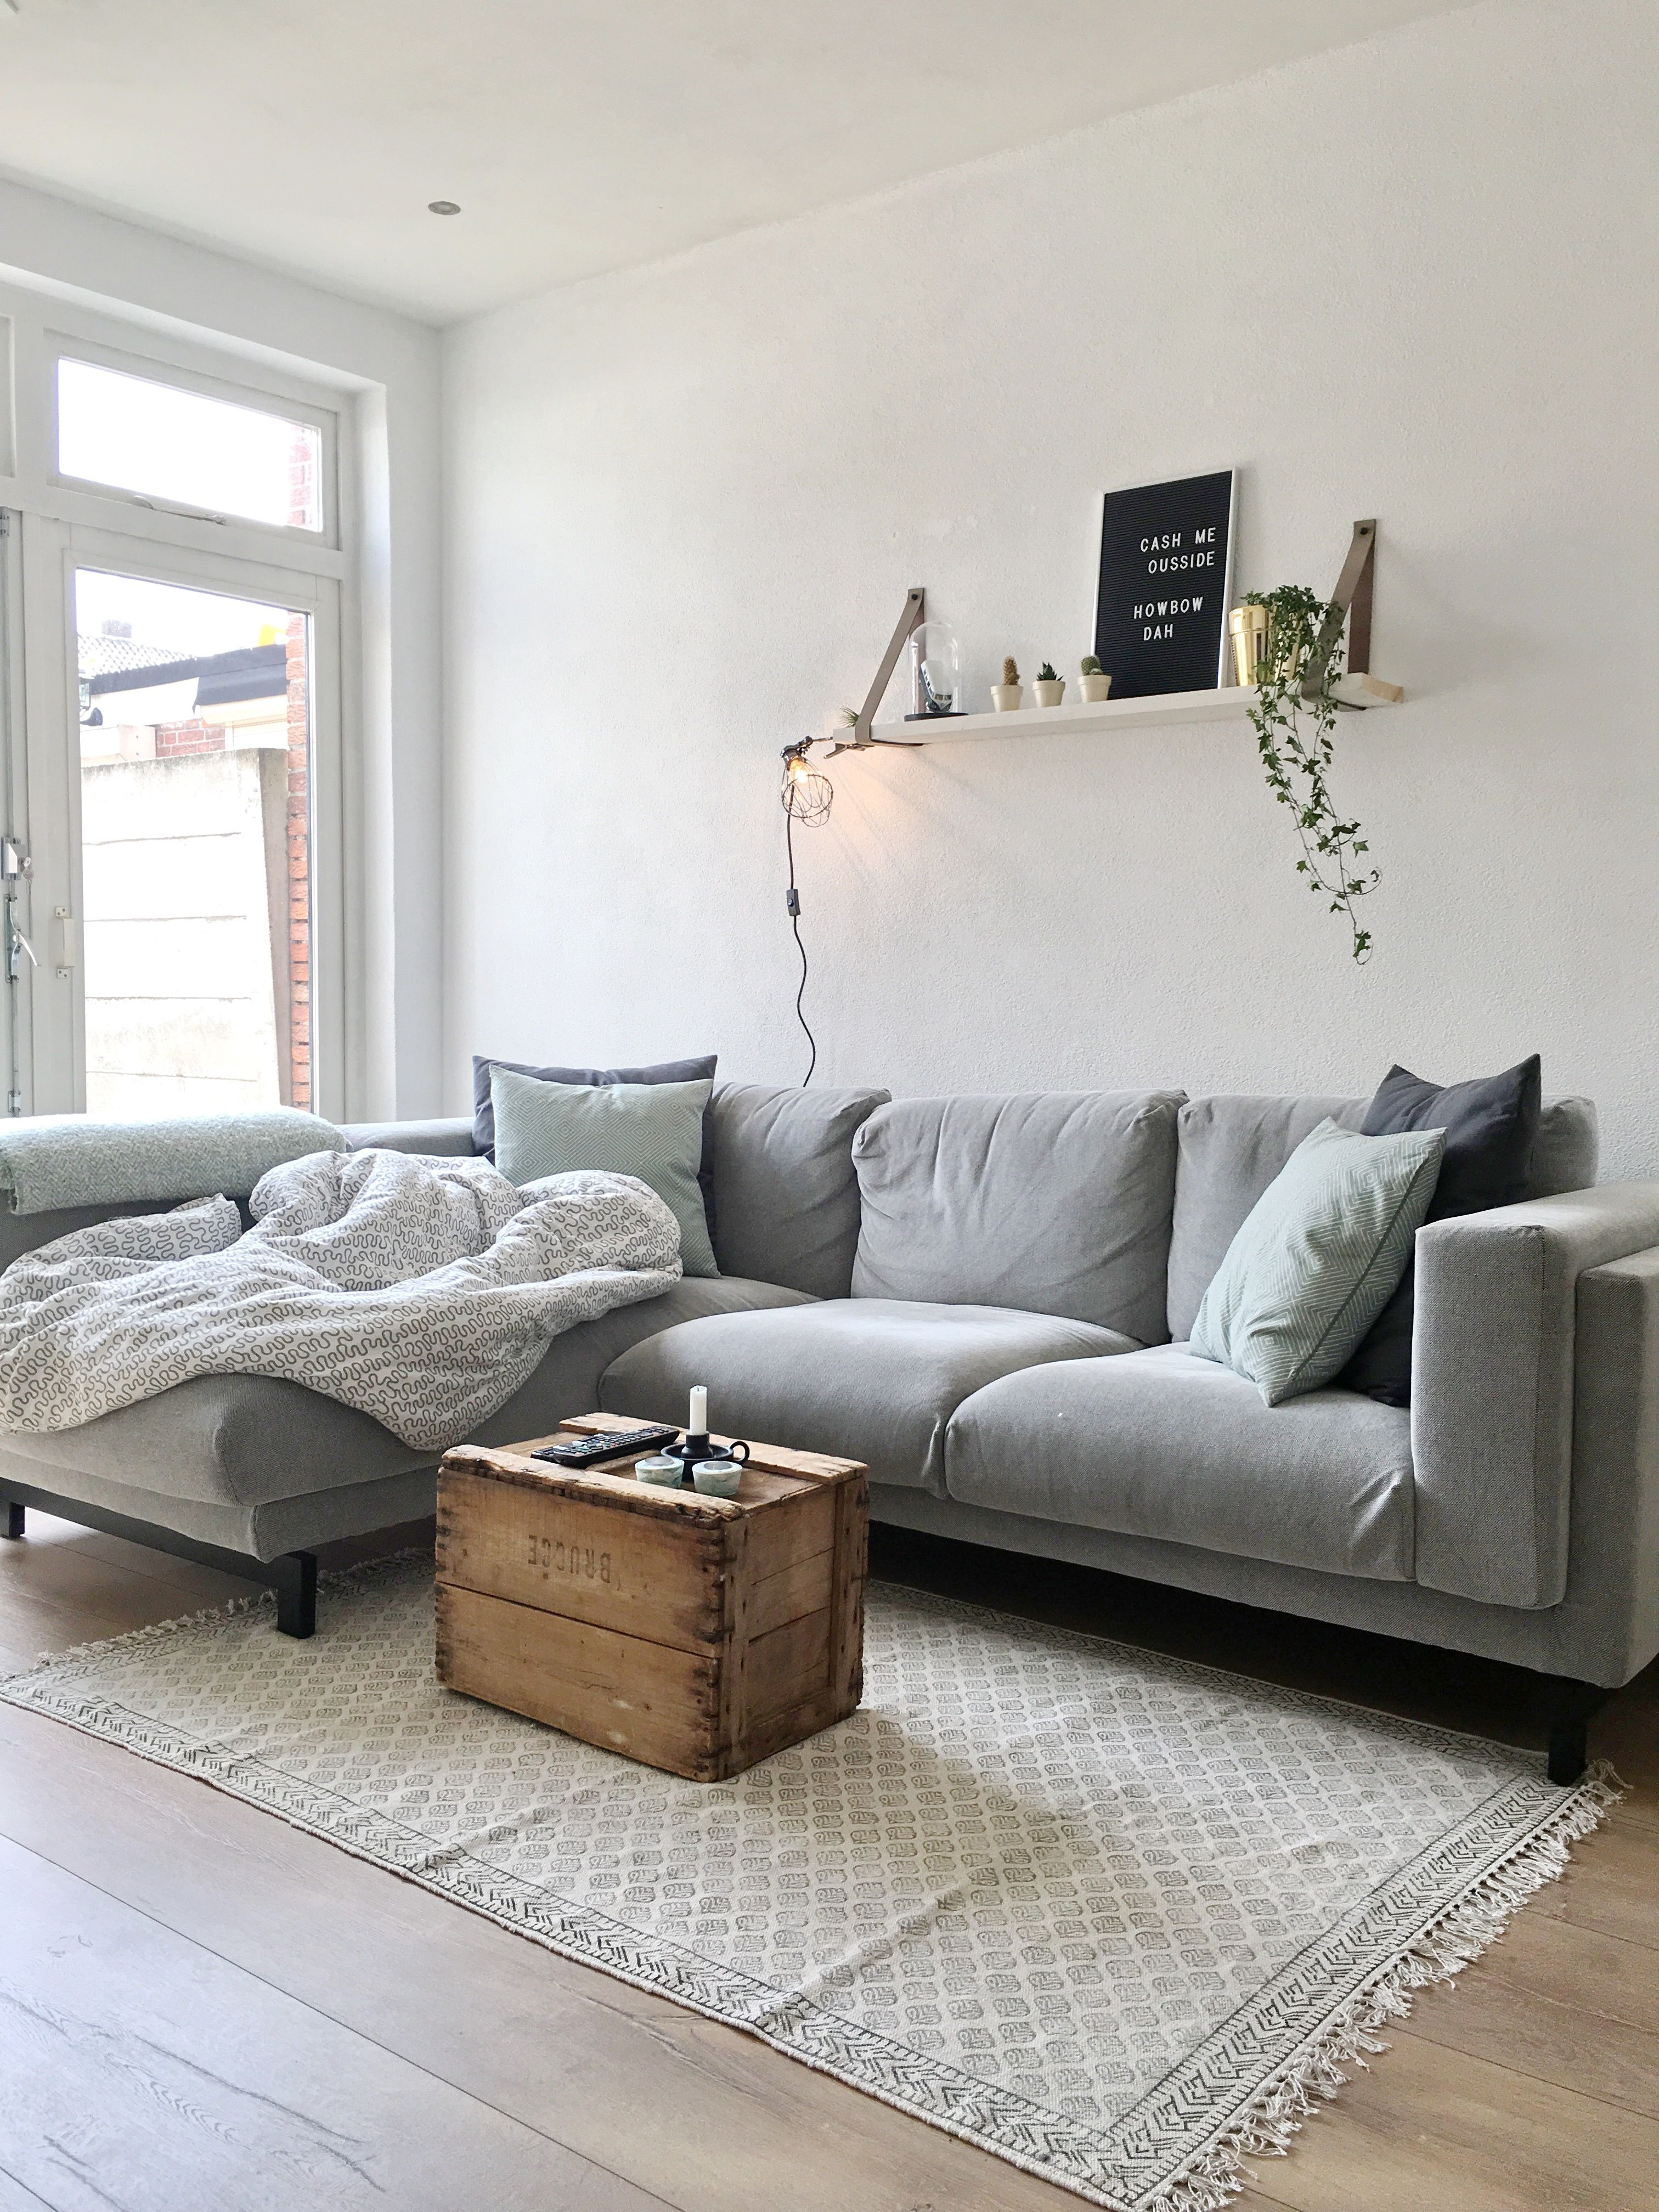 Own Home Ikea Ikeanockeby Nockeby Xenos Bijlien Living Room Sets Furniture Small Living Rooms Living Room Furniture